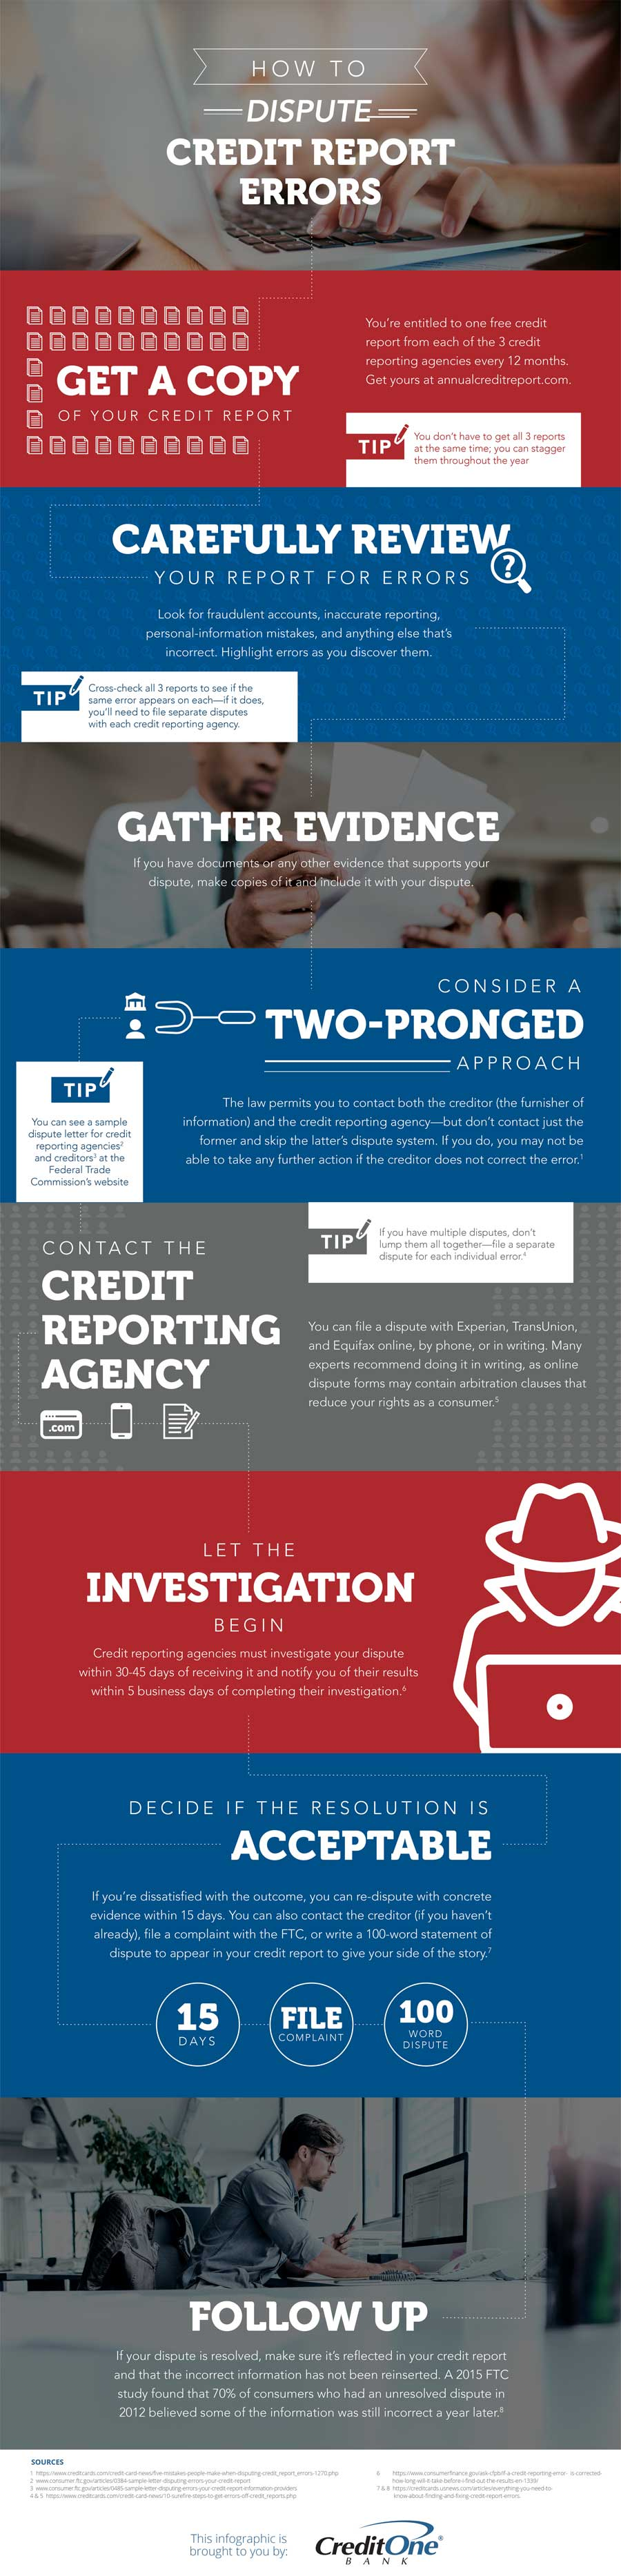 How to Dispute Credit Report Errors Infographic